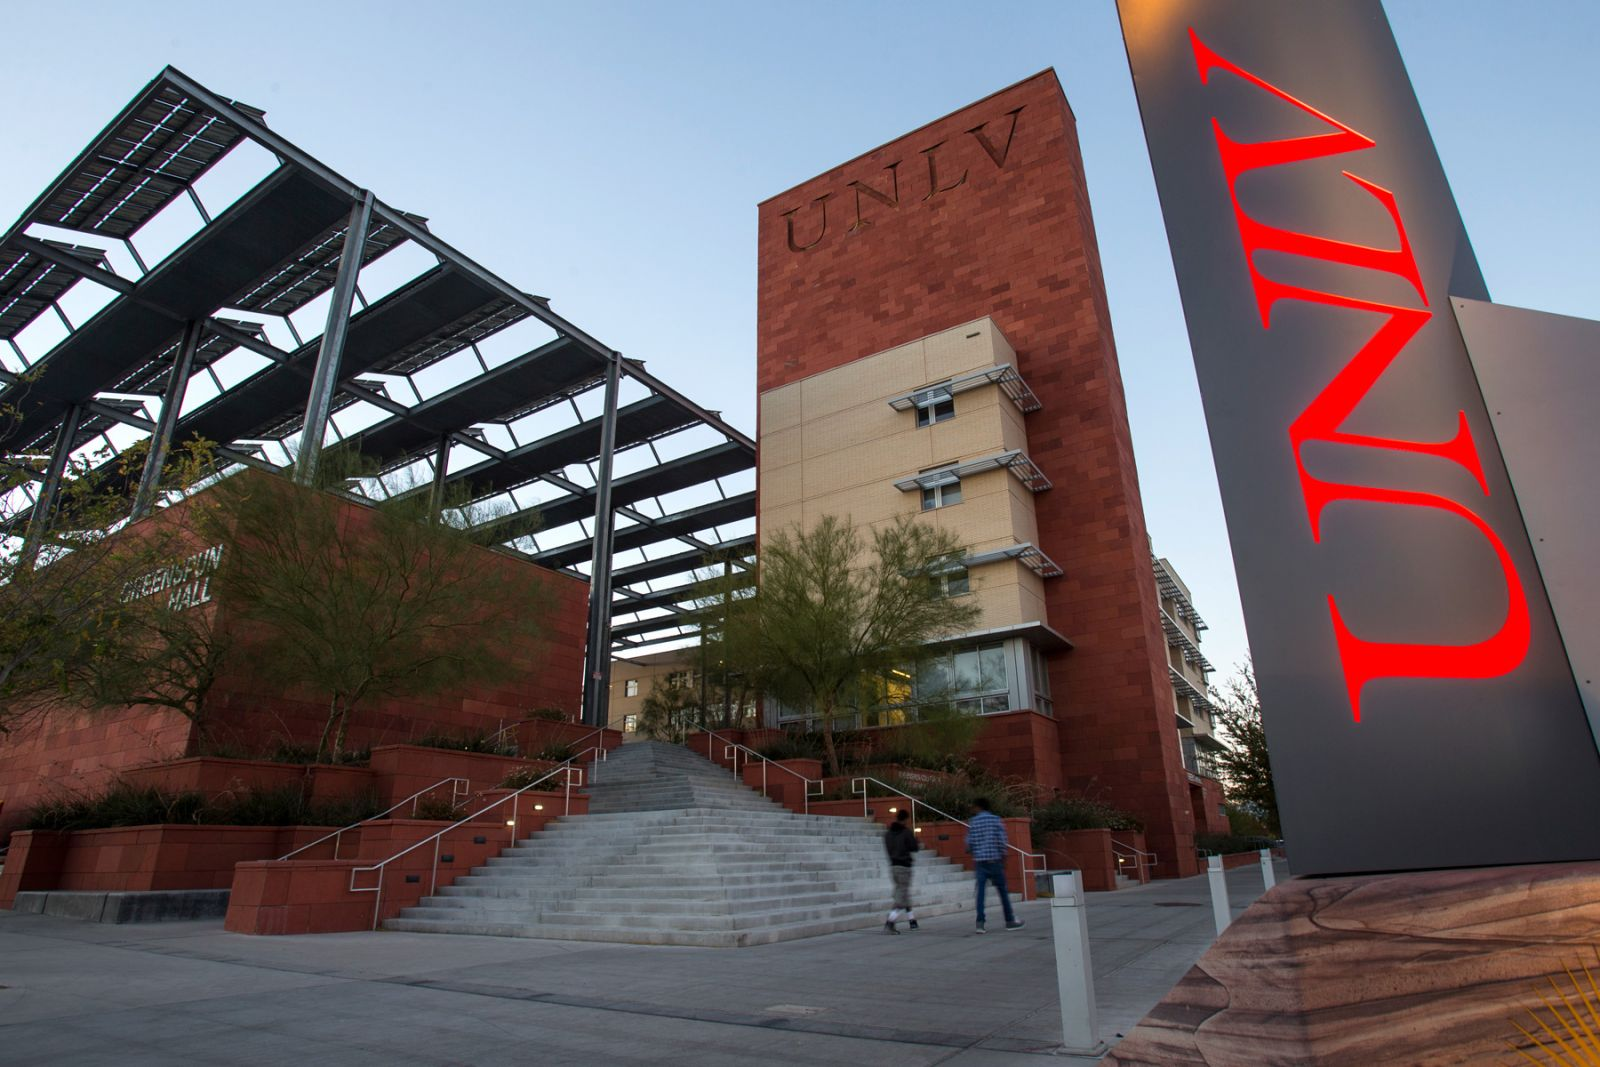 Does anyone now the academic requirements to attend UNLV?